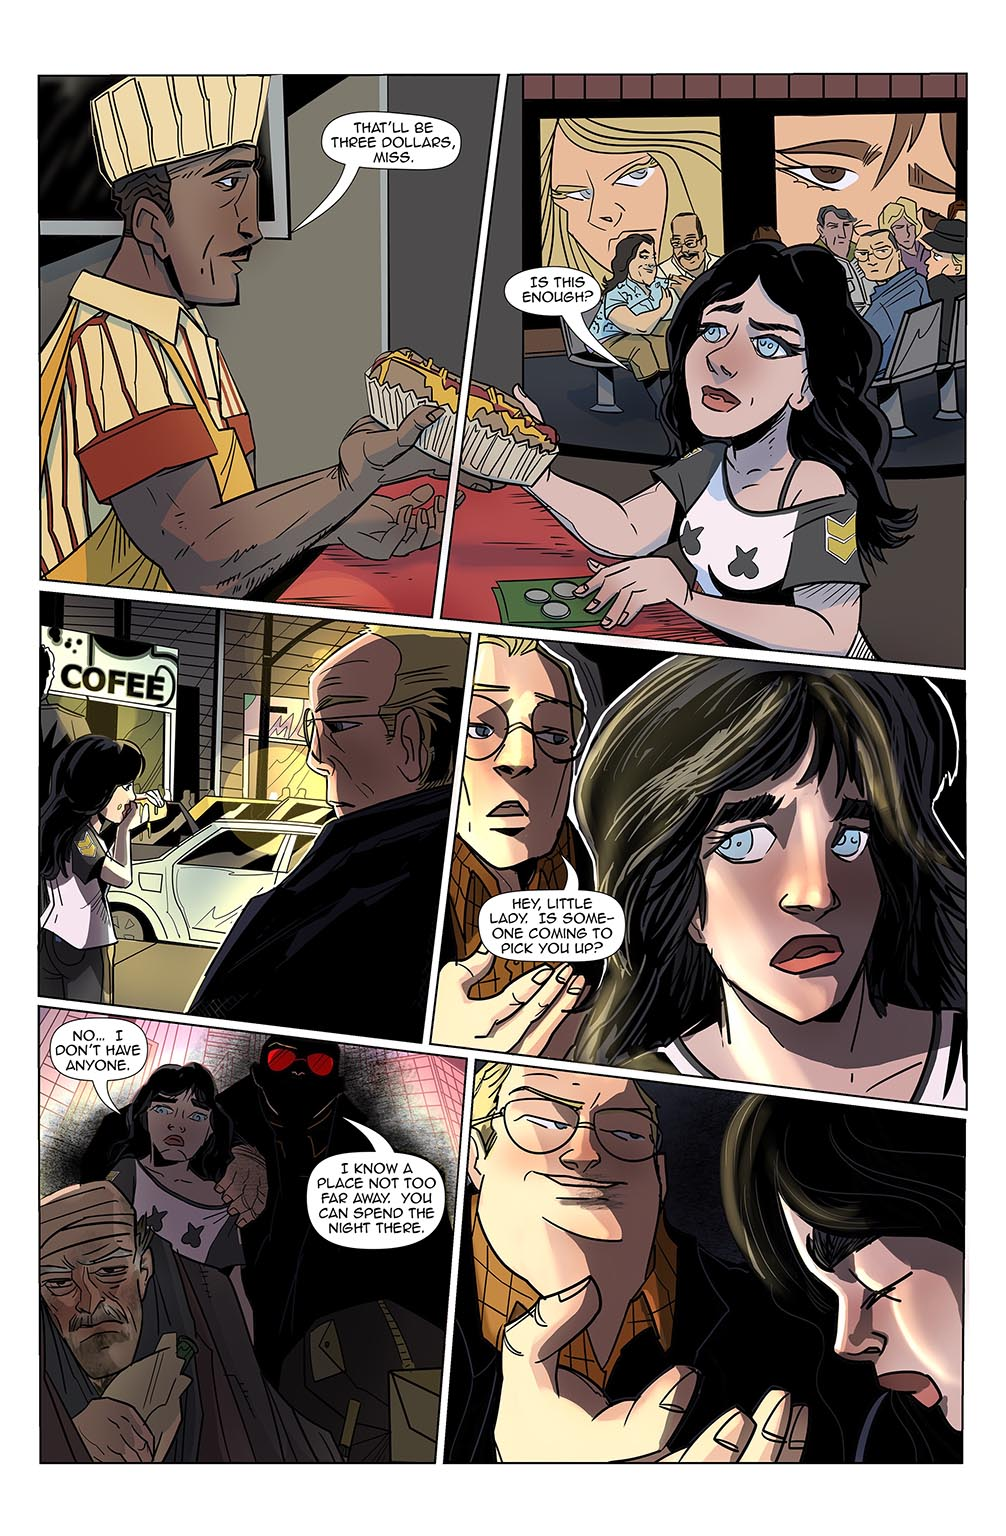 Stalker #7 Page 5 by Bradley Potts, Fabio Silva, and Bea Navarro